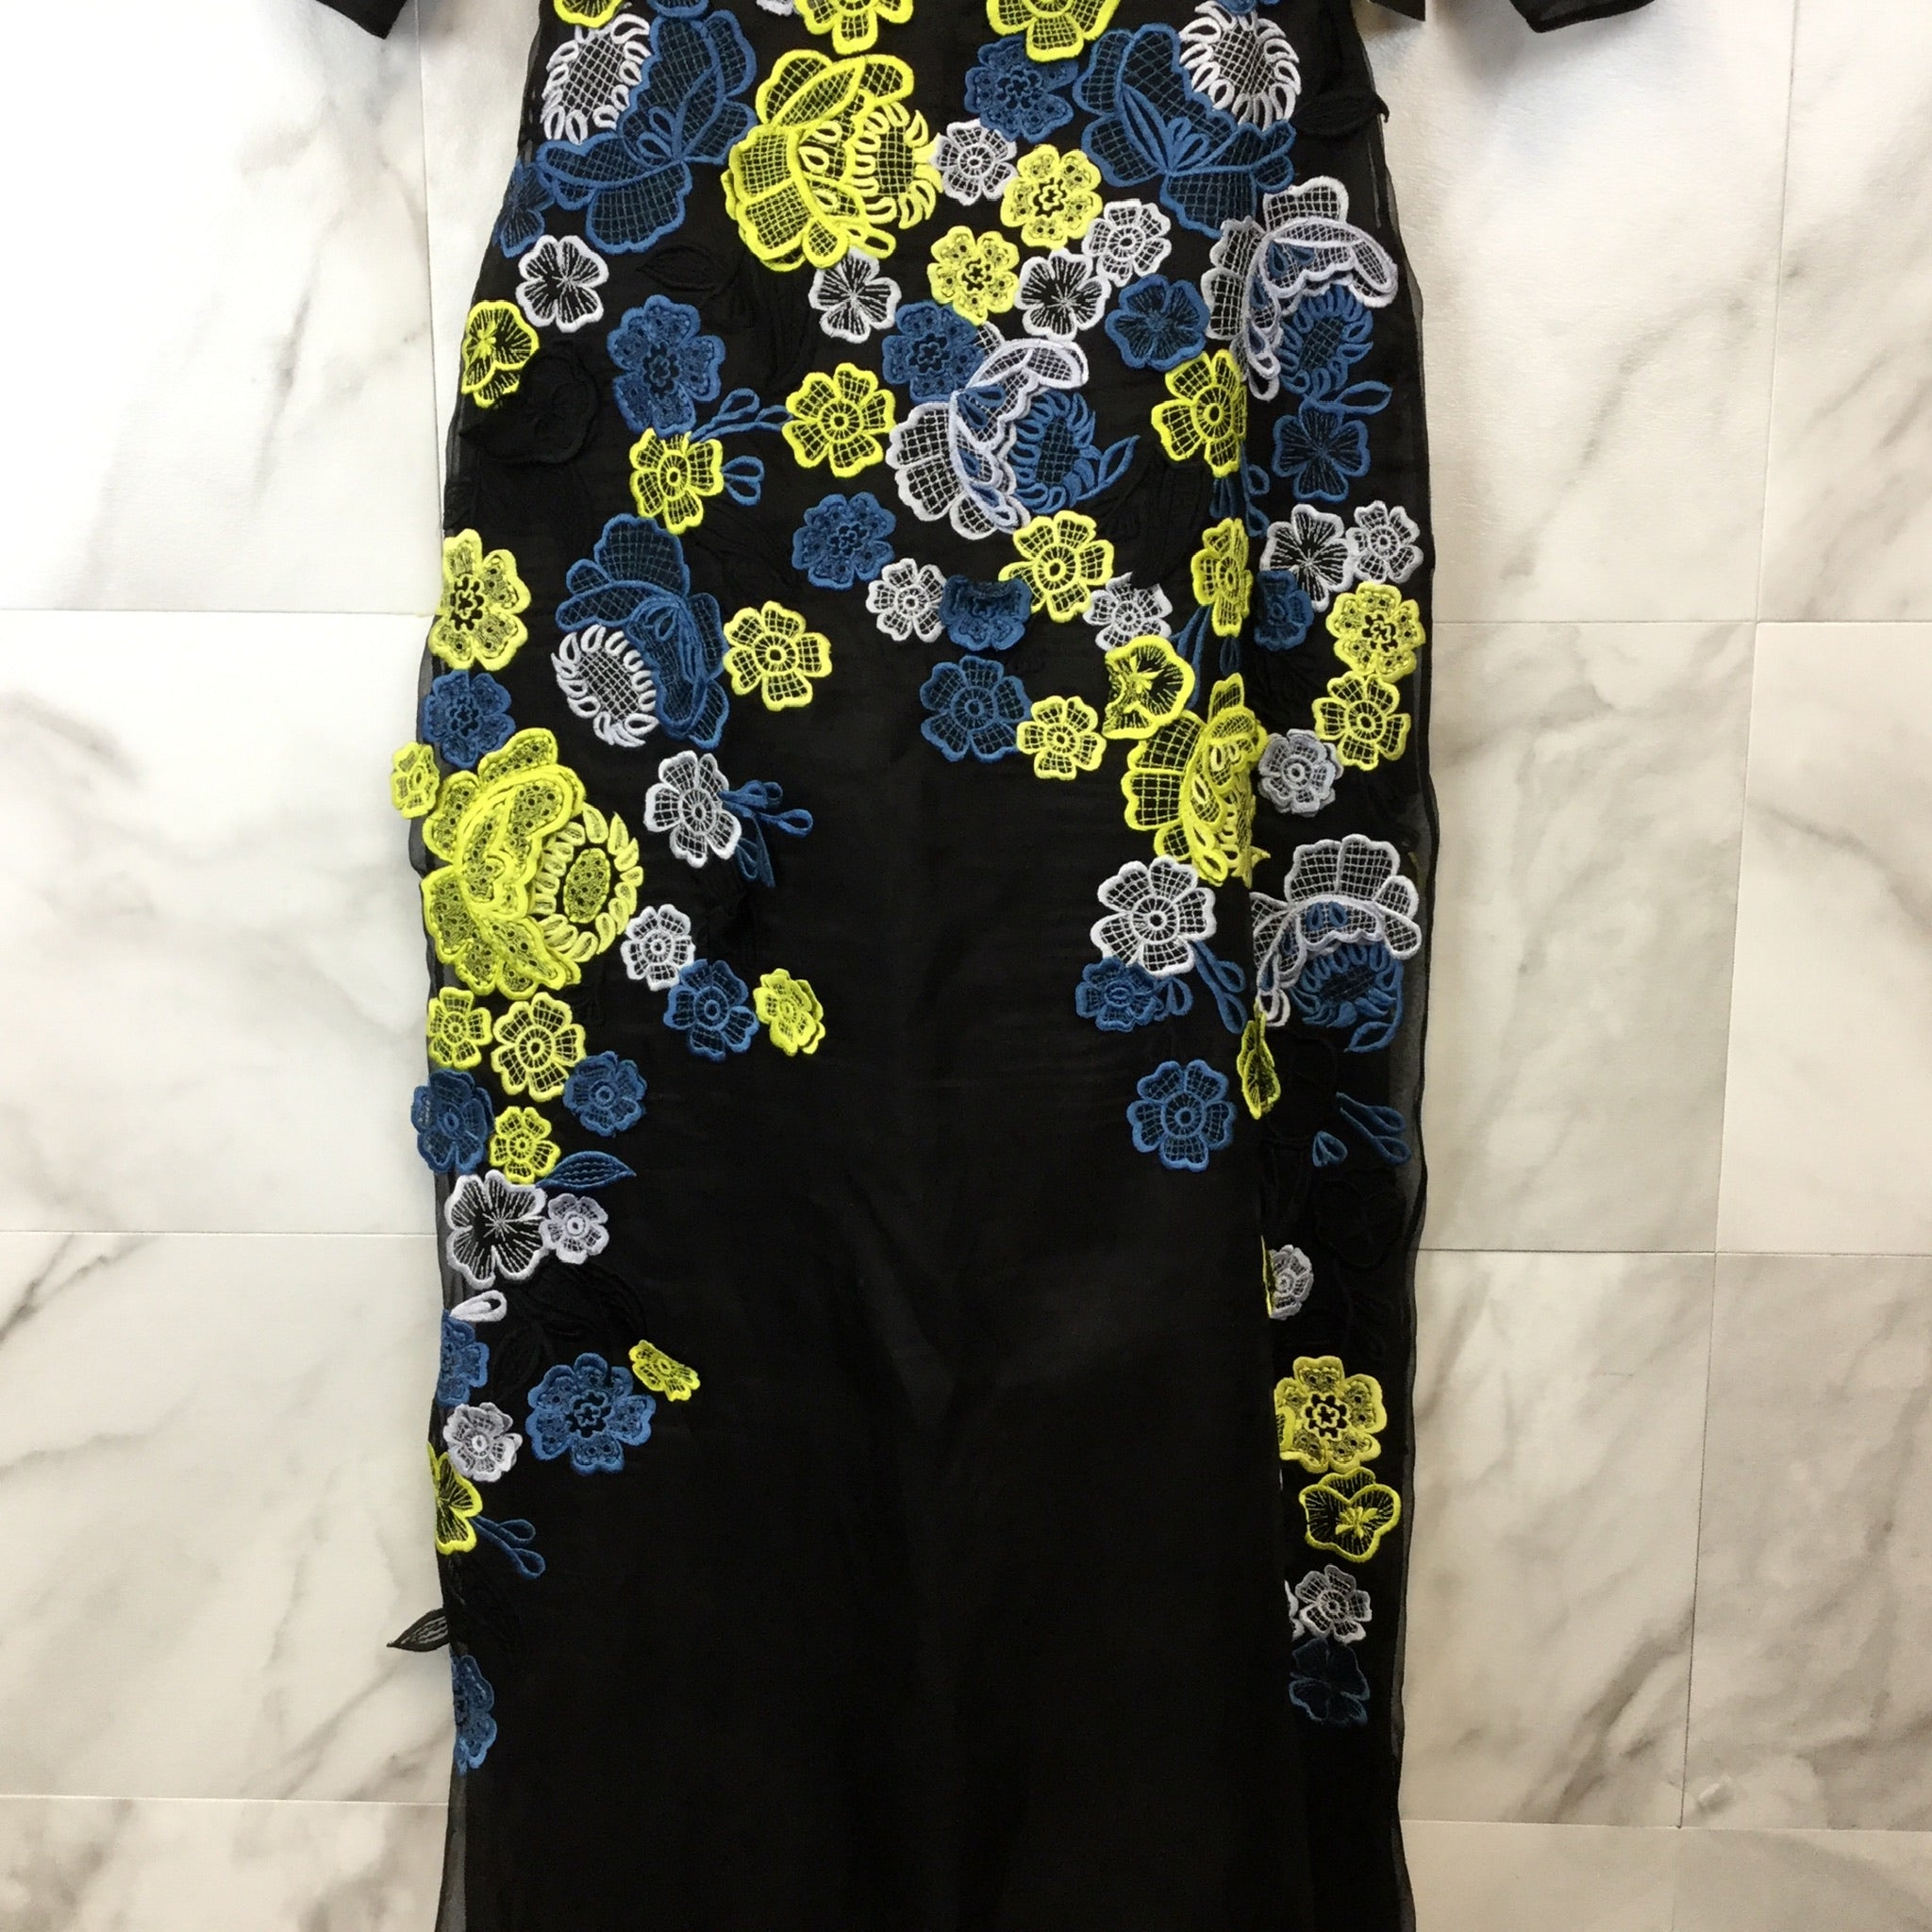 Erdem Carsani Embroidered Gown - size 8